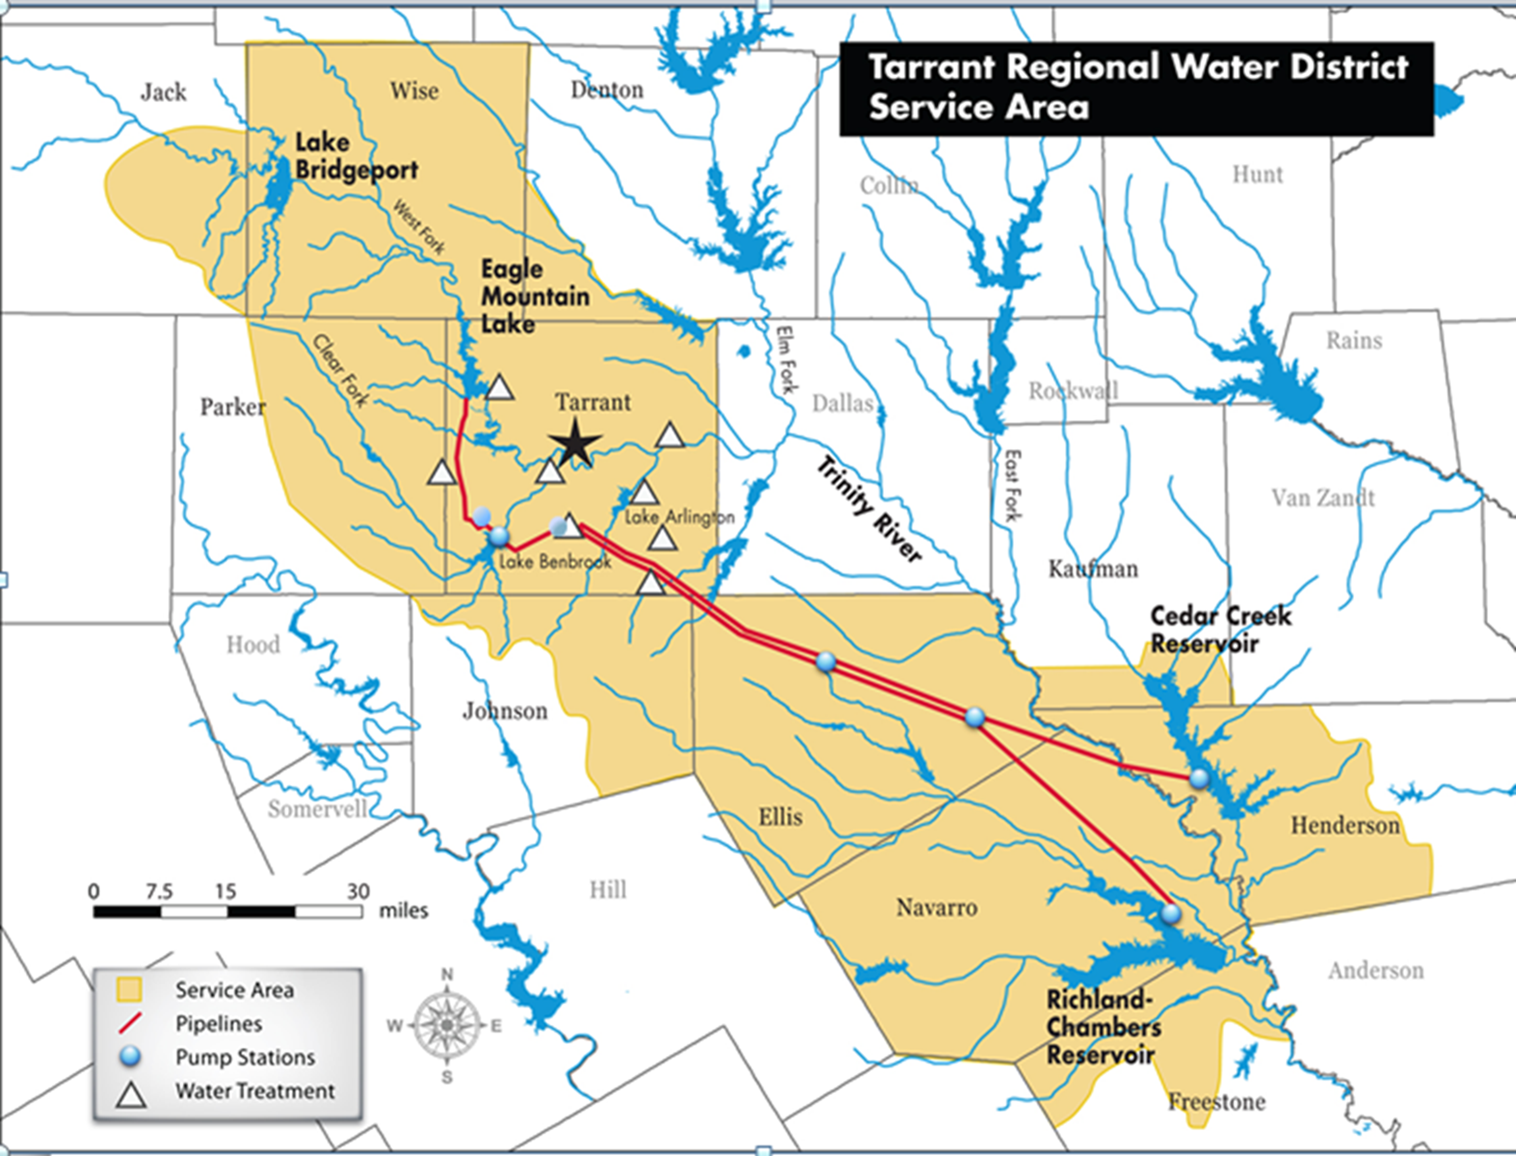 Tarrant Regional Water District Service Area